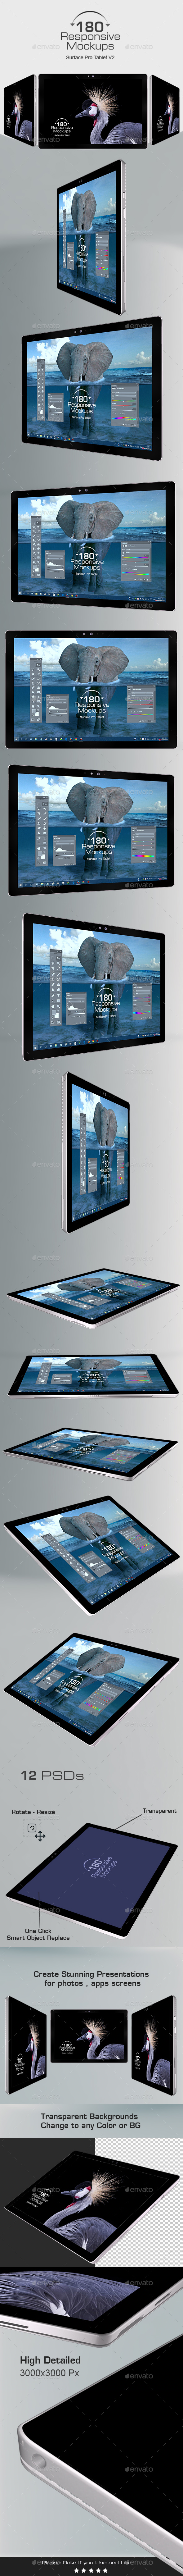 180 Responsive 3d Mockups - Surface Pro Tablet V2 - Monitors Displays